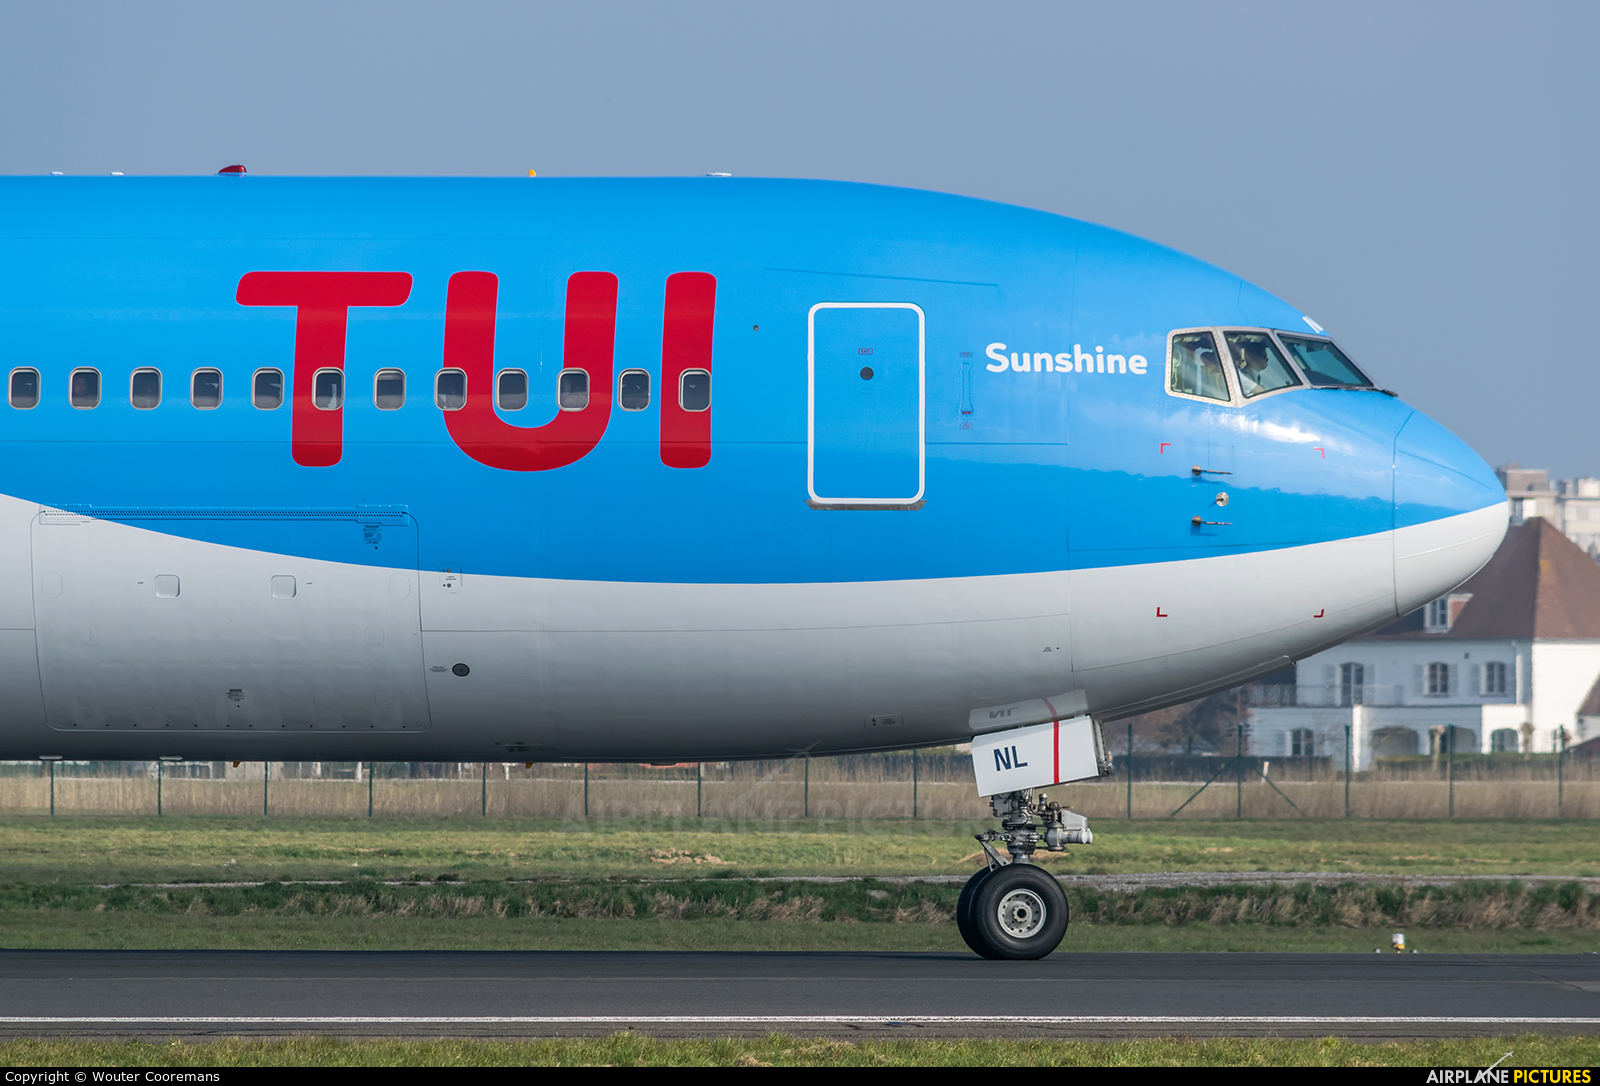 Jetairfly (TUI Airlines Belgium) OO-JNL aircraft at Ostend / Bruges